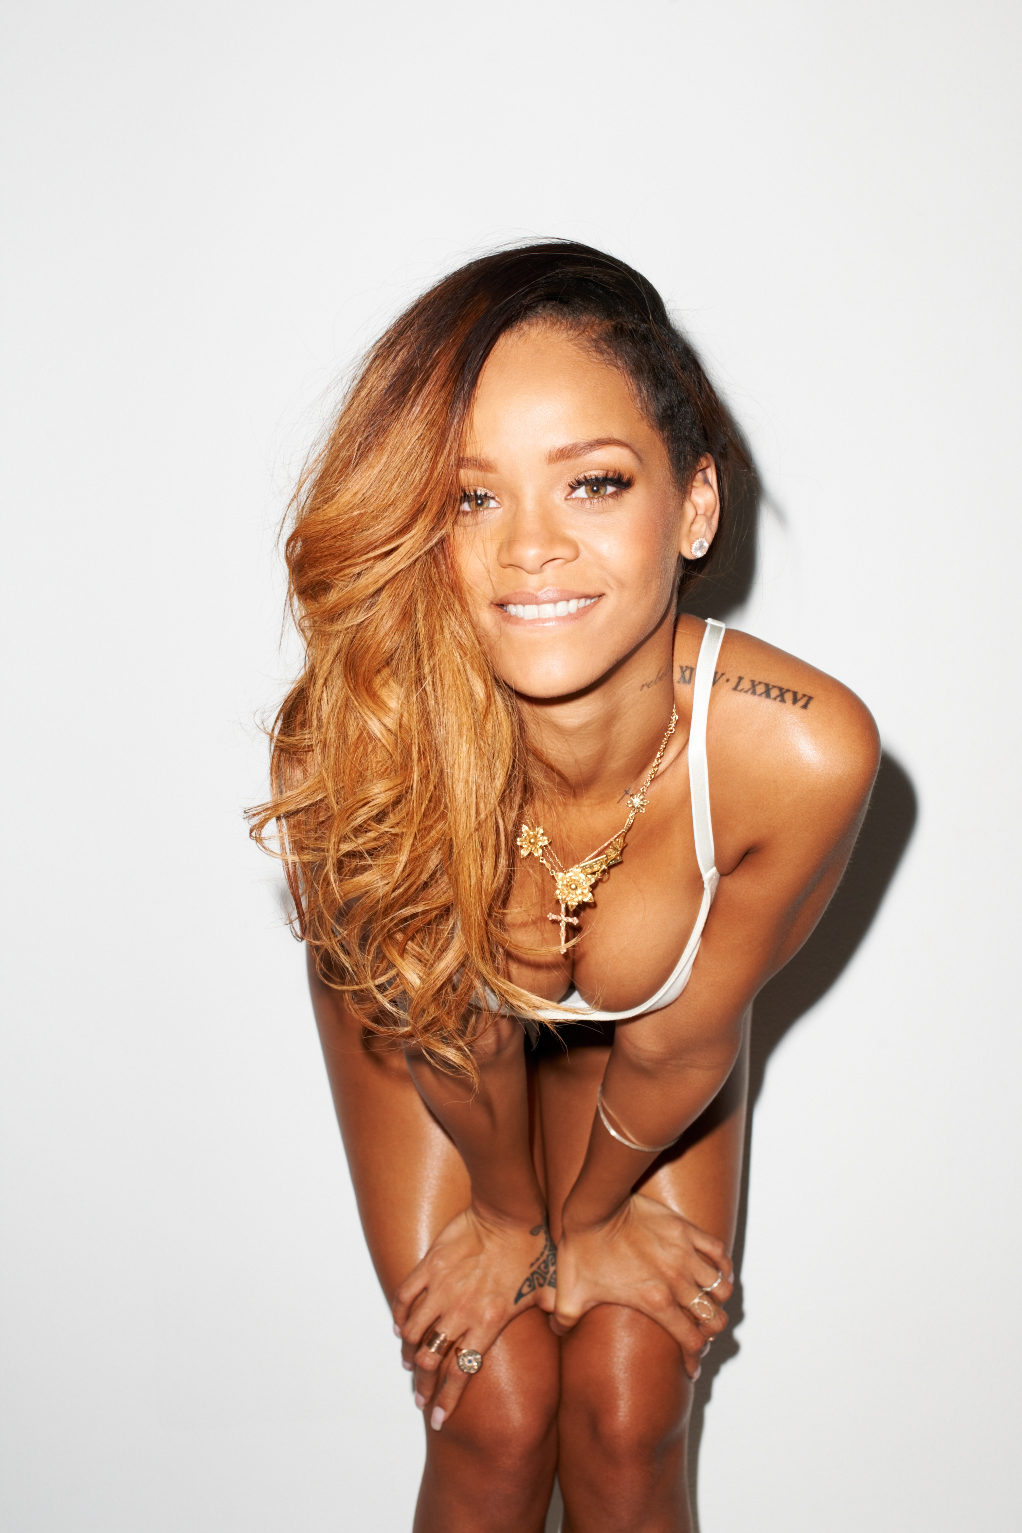 Rihanna - cc:by-sa - Fuente Wikipedia : Author: Ilikeriri